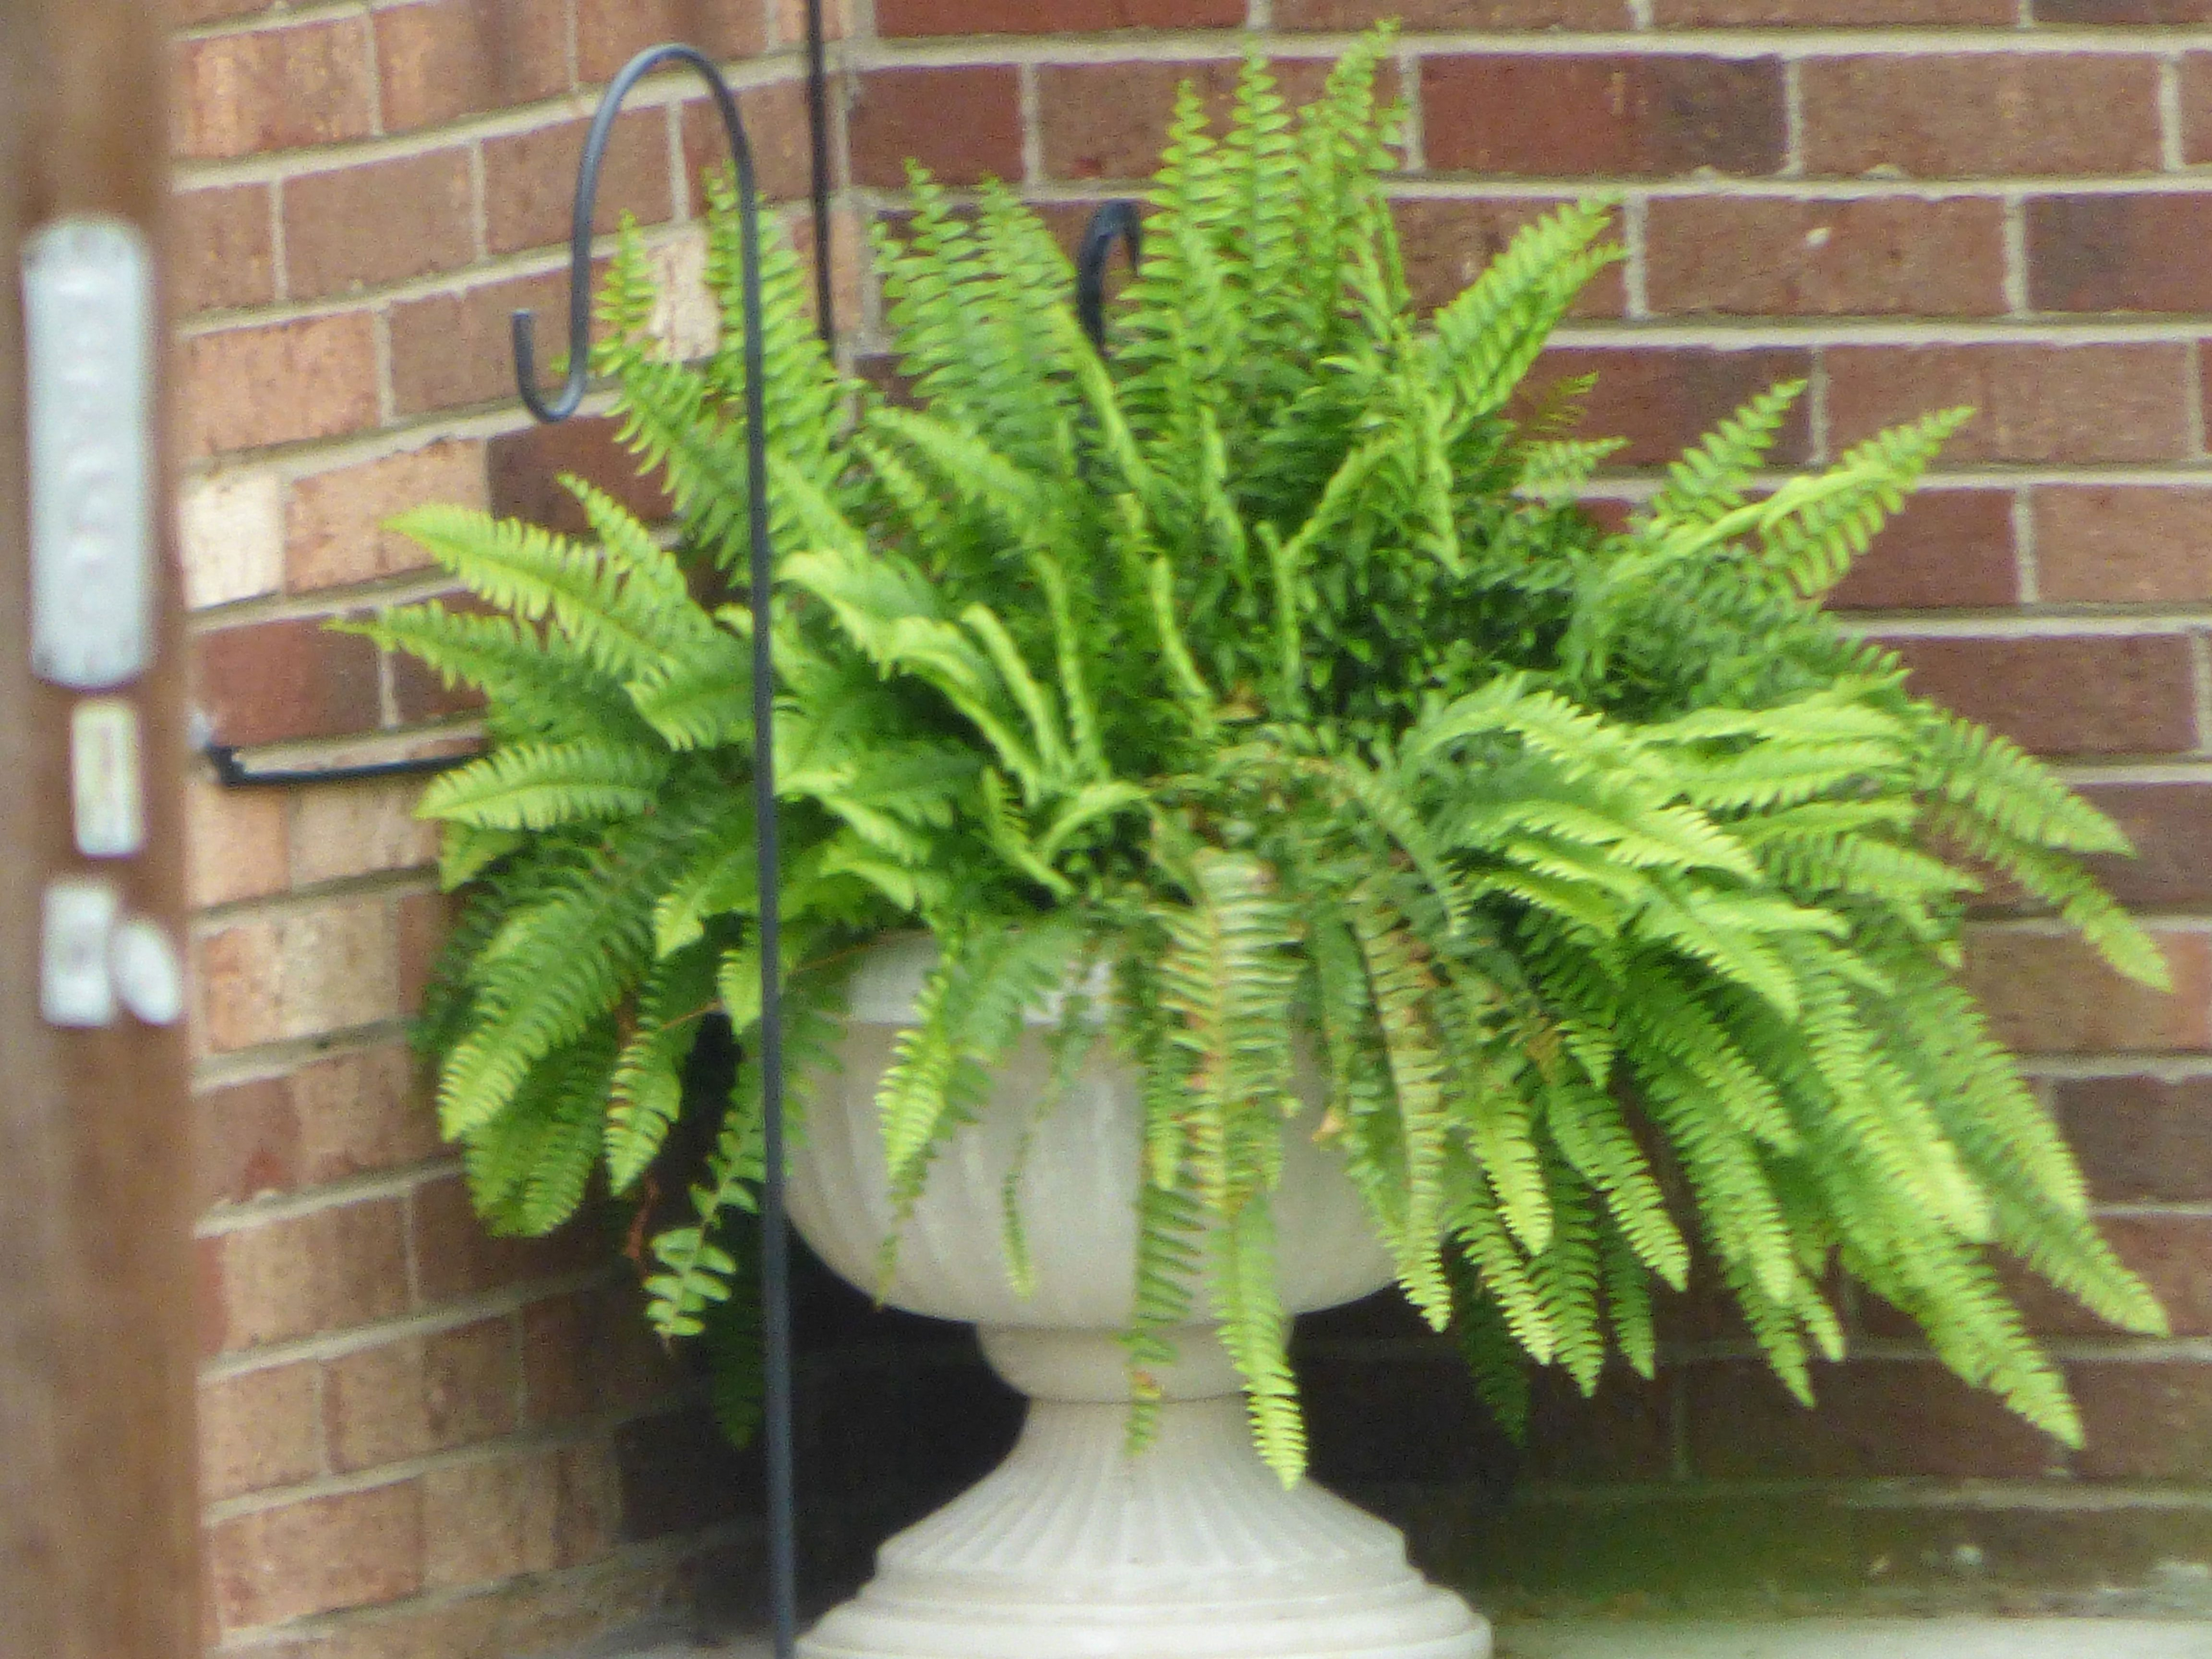 boston fern outdoor care tips for growing boston fern in gardens. Black Bedroom Furniture Sets. Home Design Ideas